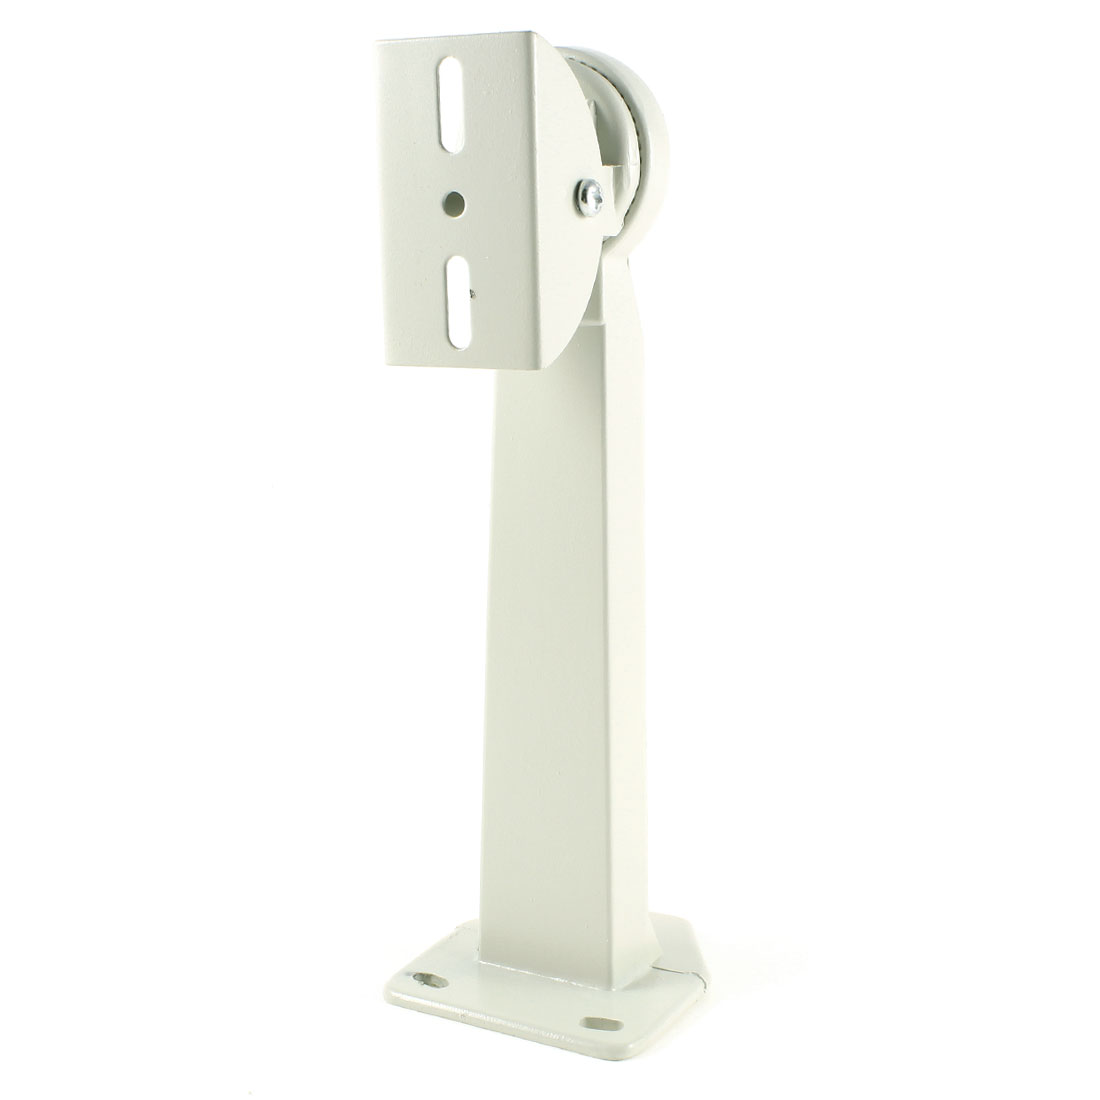 28cm Height Off White Metal Wall Ceiling Mount Bracket Stand for CCTV Camera